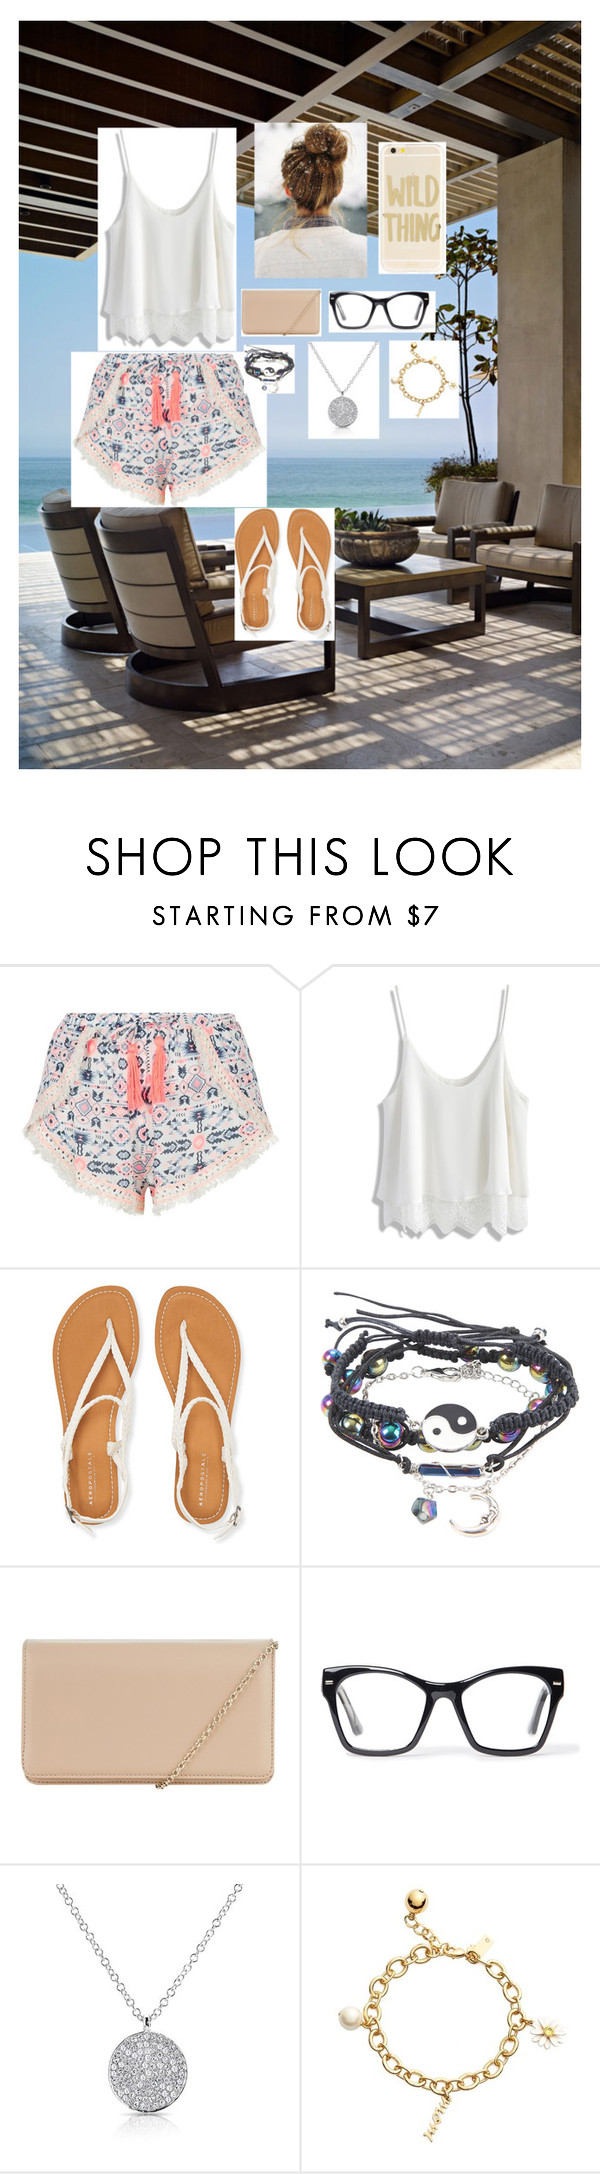 """""""A Vacation in Cozumel, Mexico"""" by fearlessreddick ❤ liked on Polyvore featuring New Look, Chicwish, Aéropostale, Hobbs, Spitfire, Anne Sisteron, Kate Spade and Sonix"""